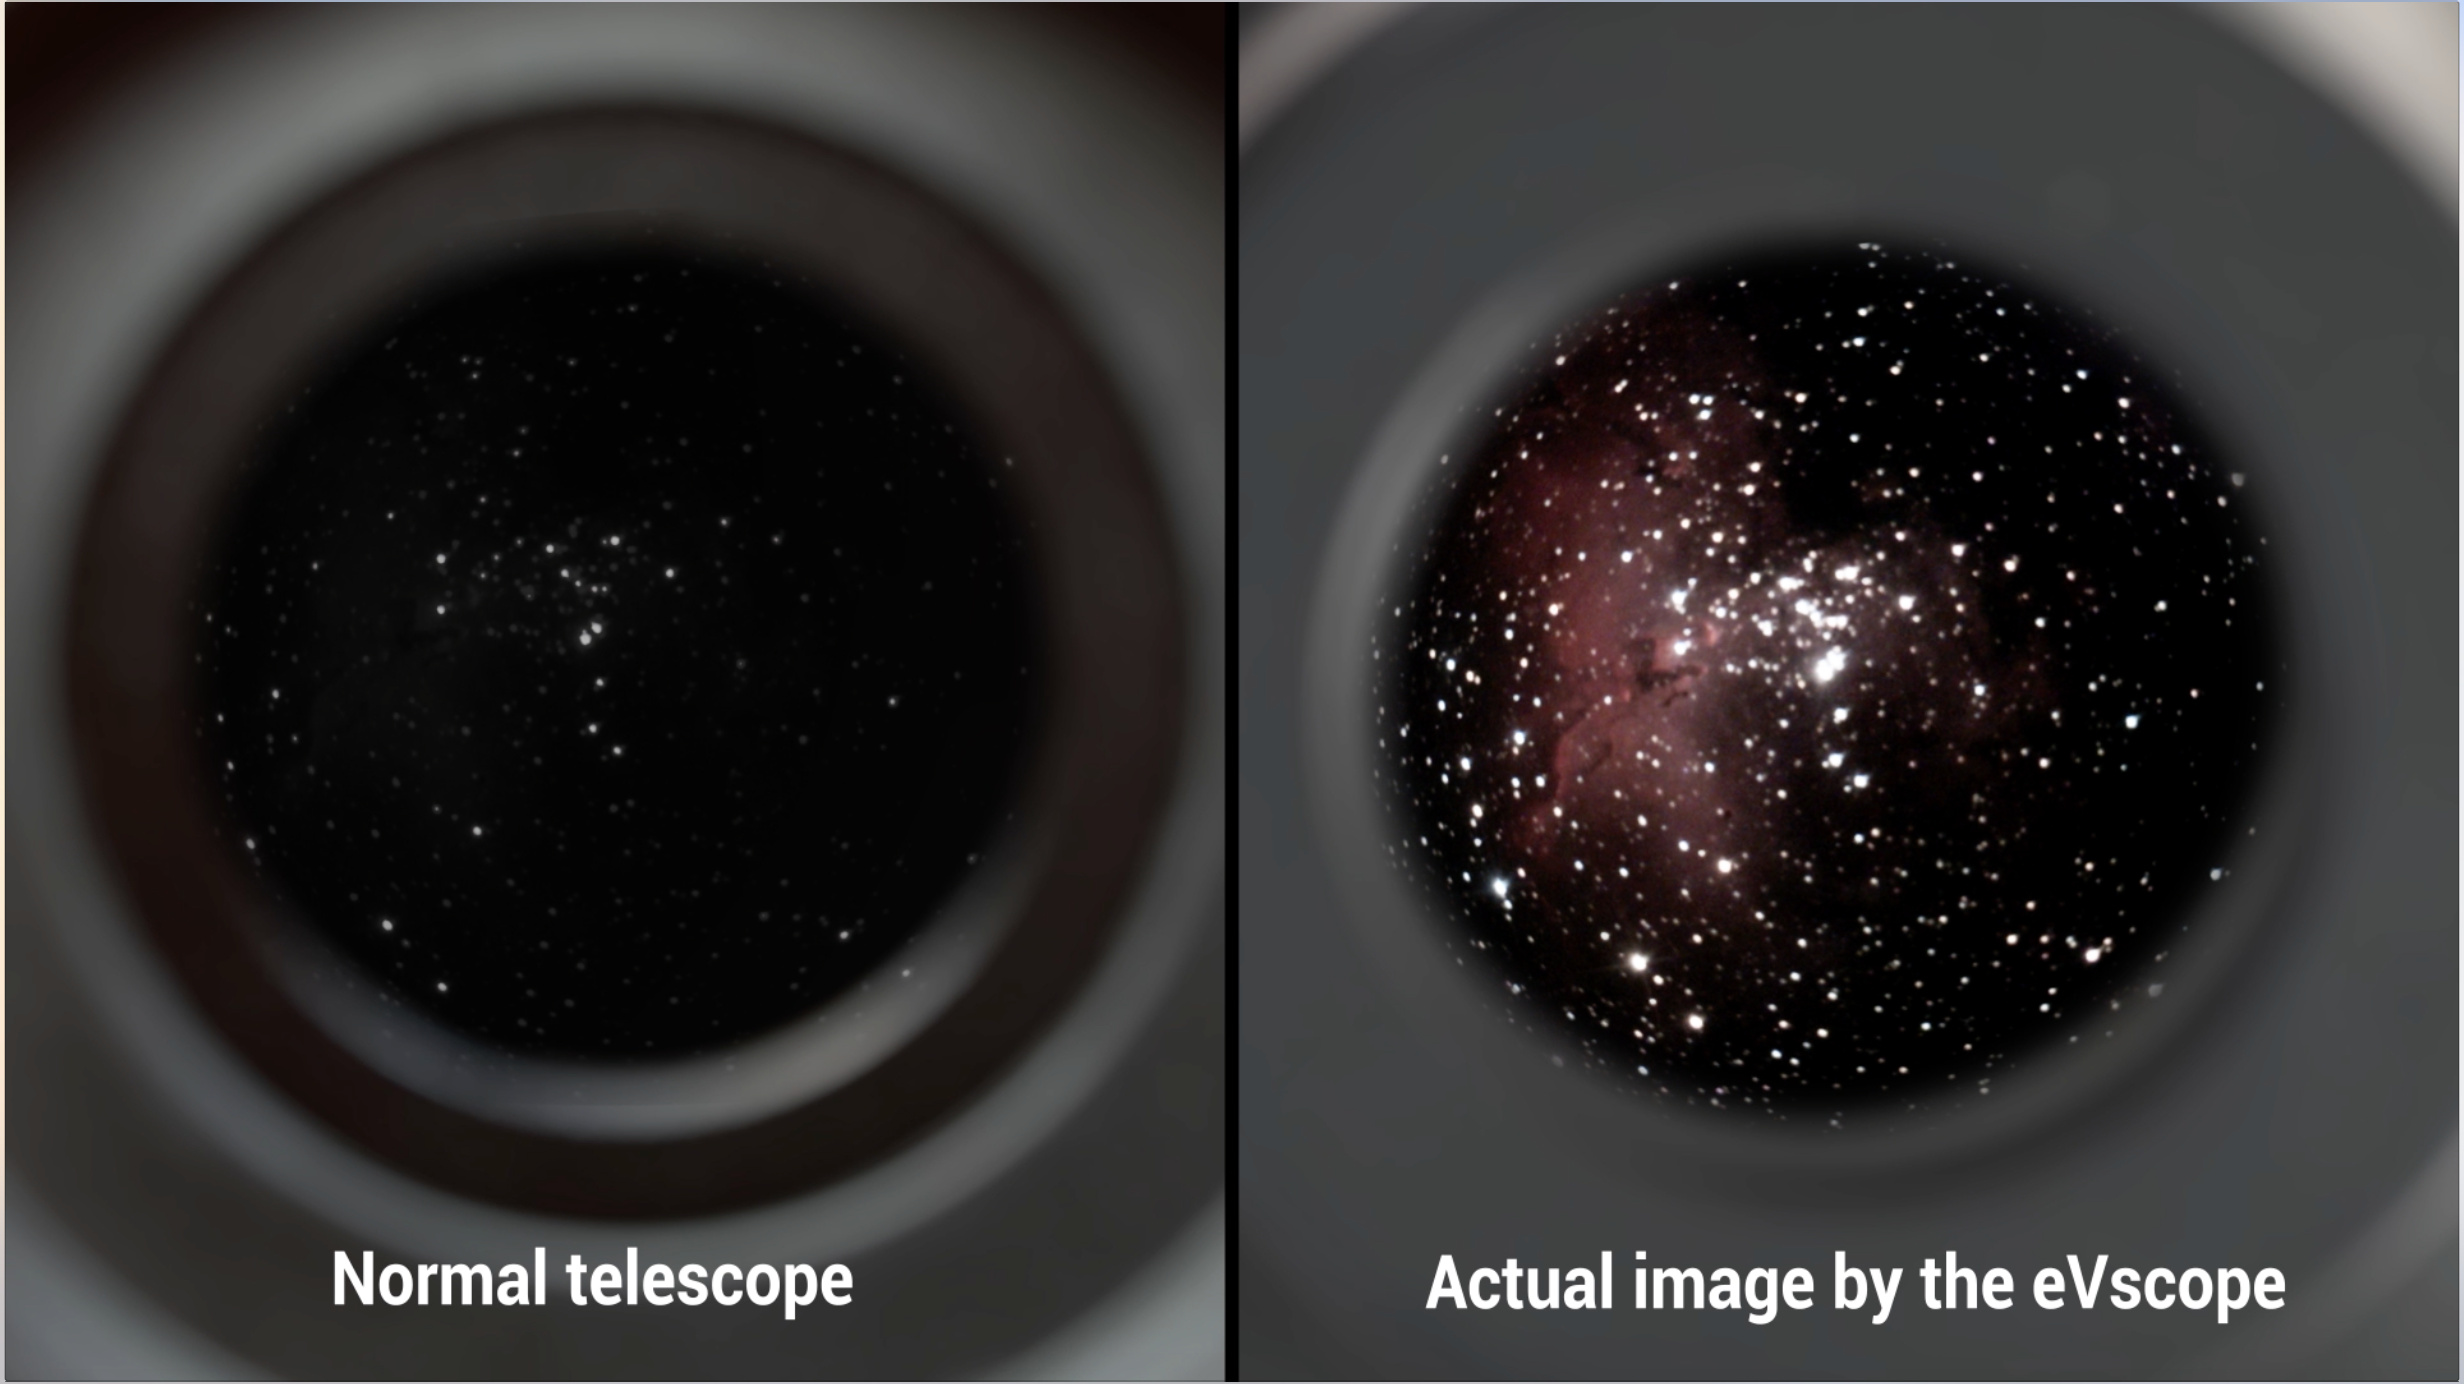 It's Official! The eVscope from Unistellar Gets Kickstarted